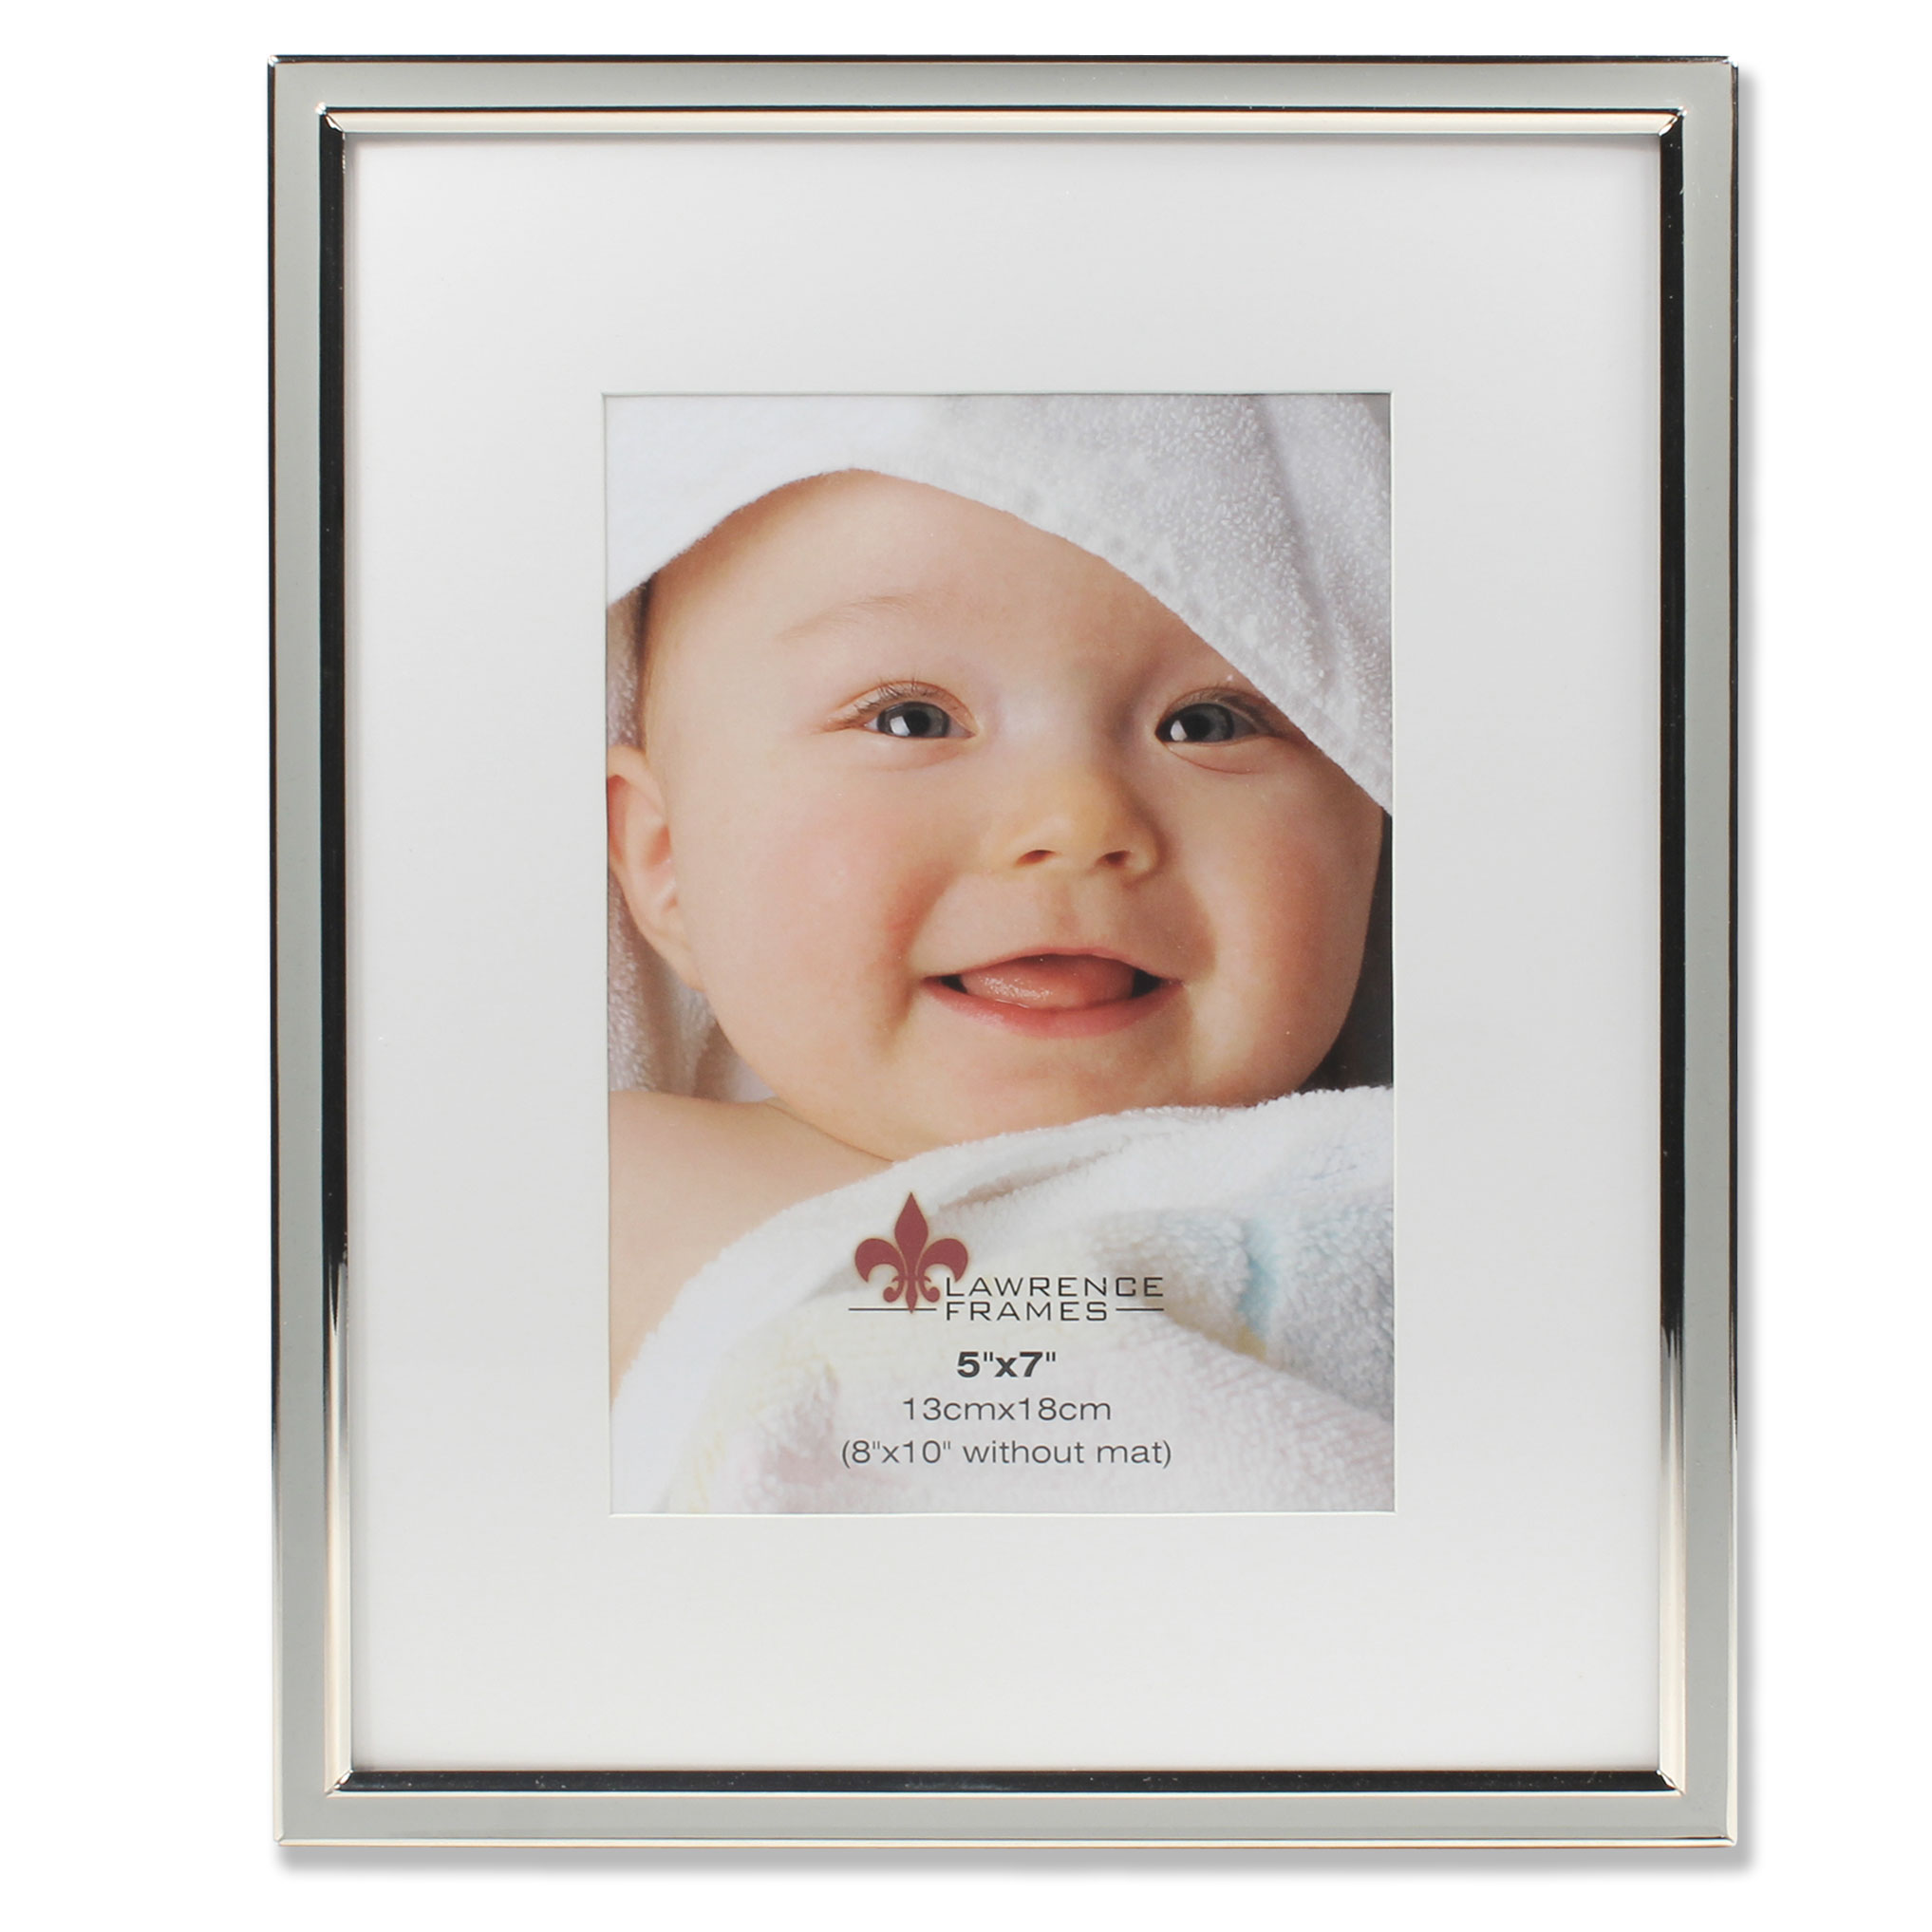 5x7 Matted Gray Enamel and Silver Metal Picture Frame - 8x10 Without ...